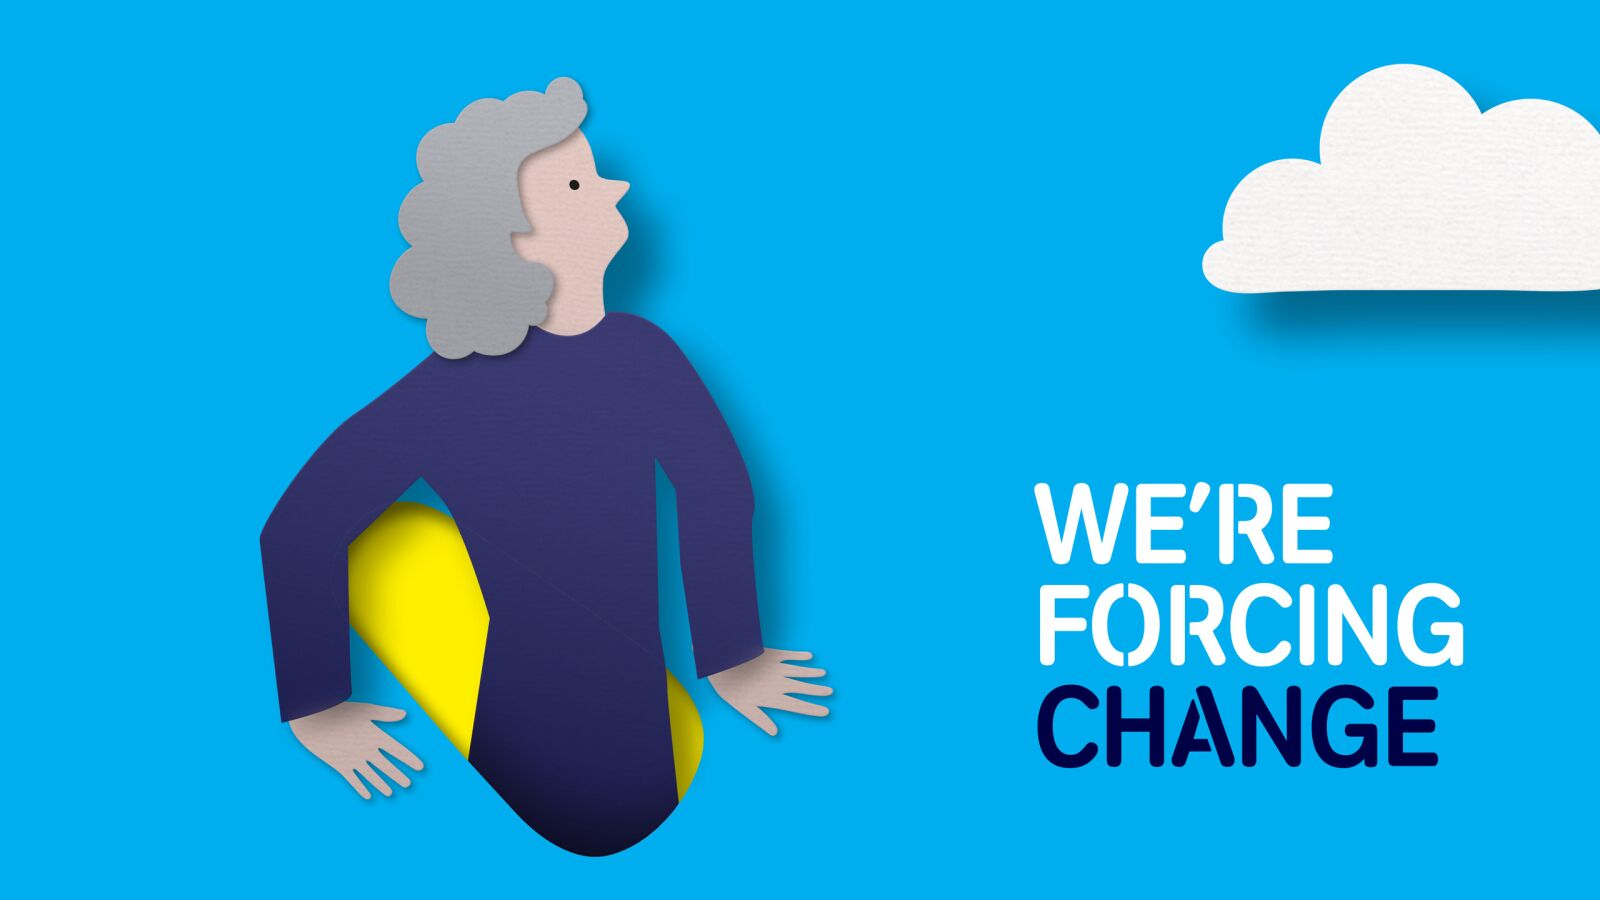 A refreshed identity inspired by the spirit of those living with Parkinson's